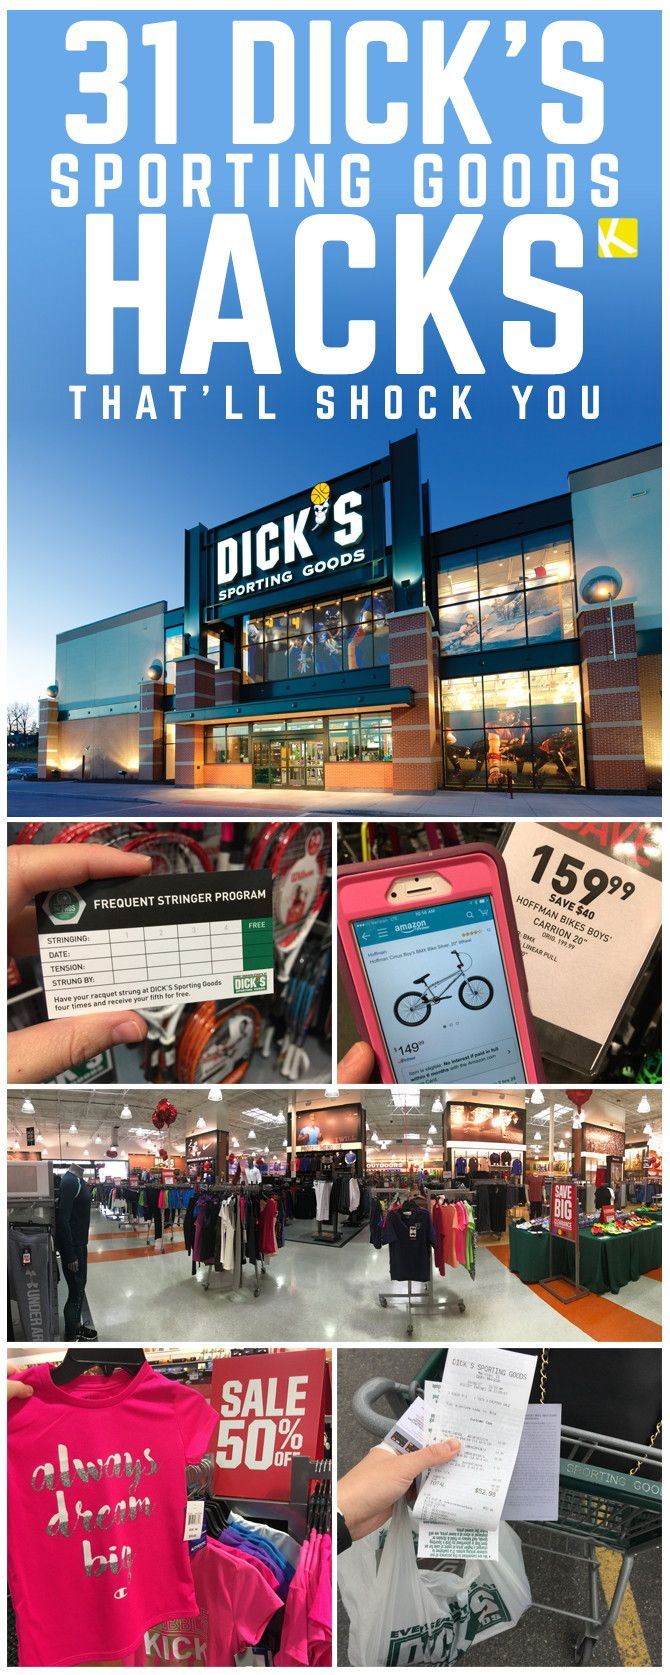 31 DICK'S Sporting Goods Hacks That'll Shock You - The Krazy Coupon Lady